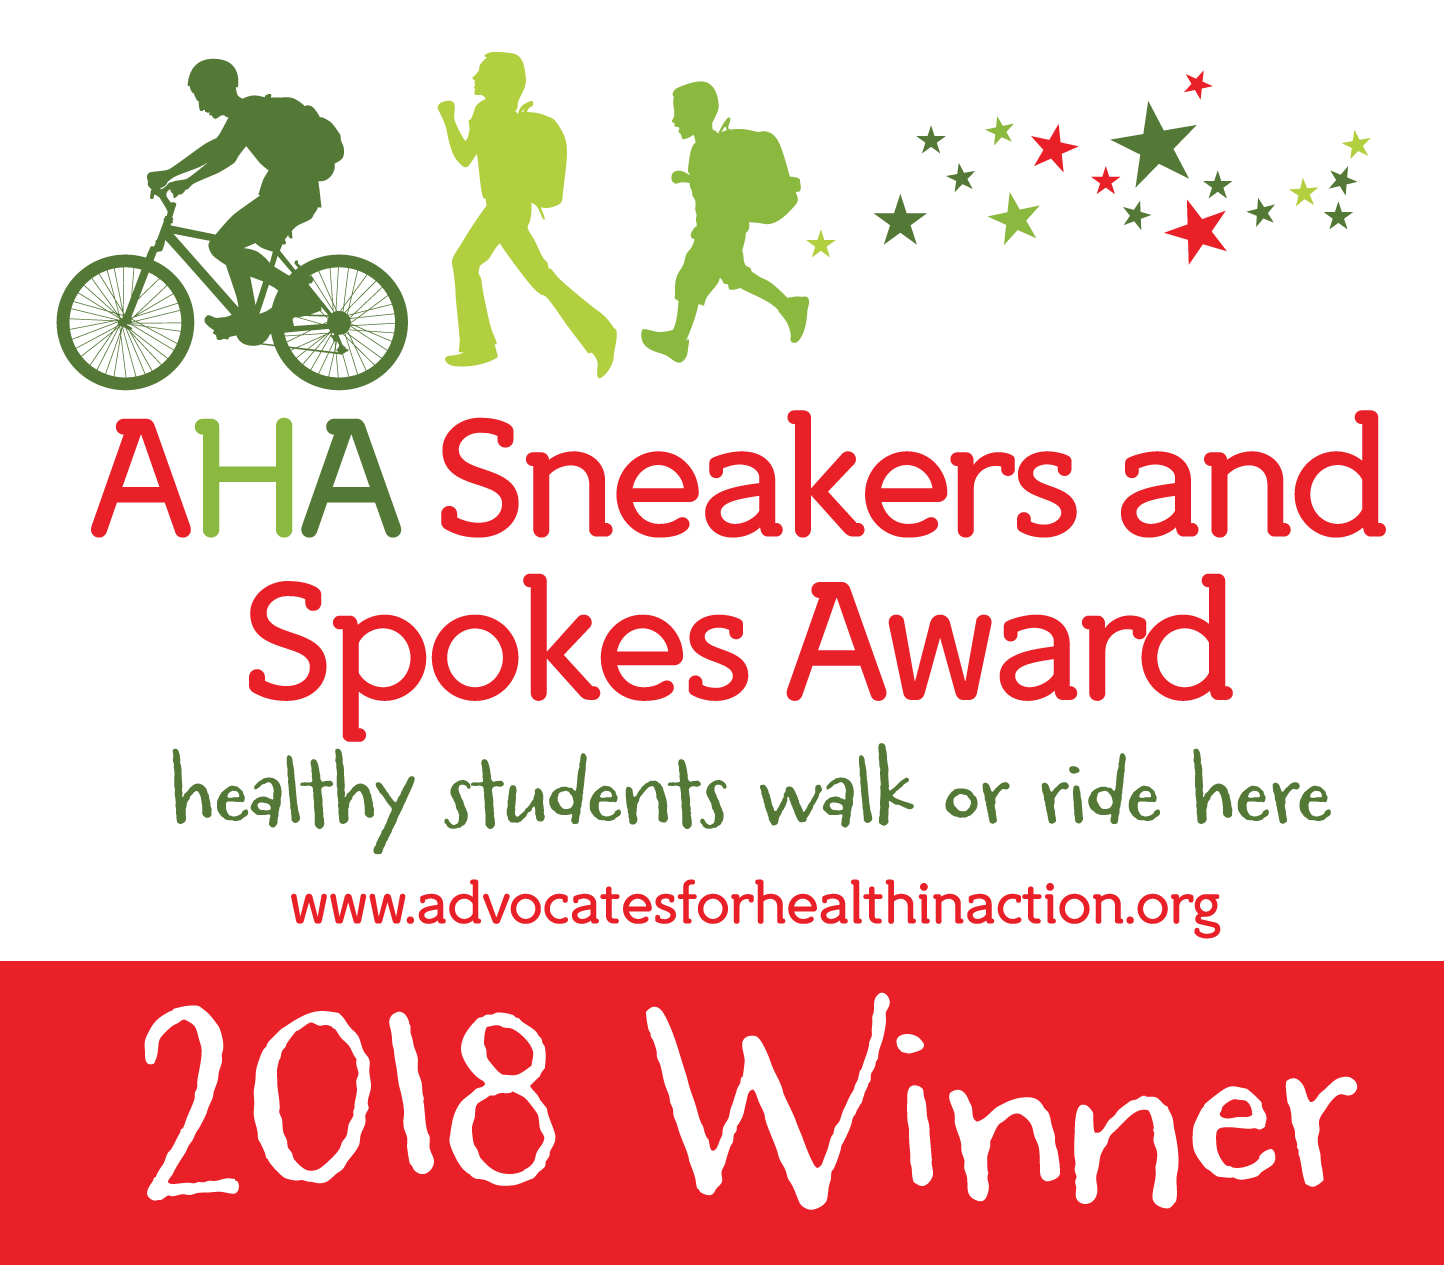 sneakers and spokes award